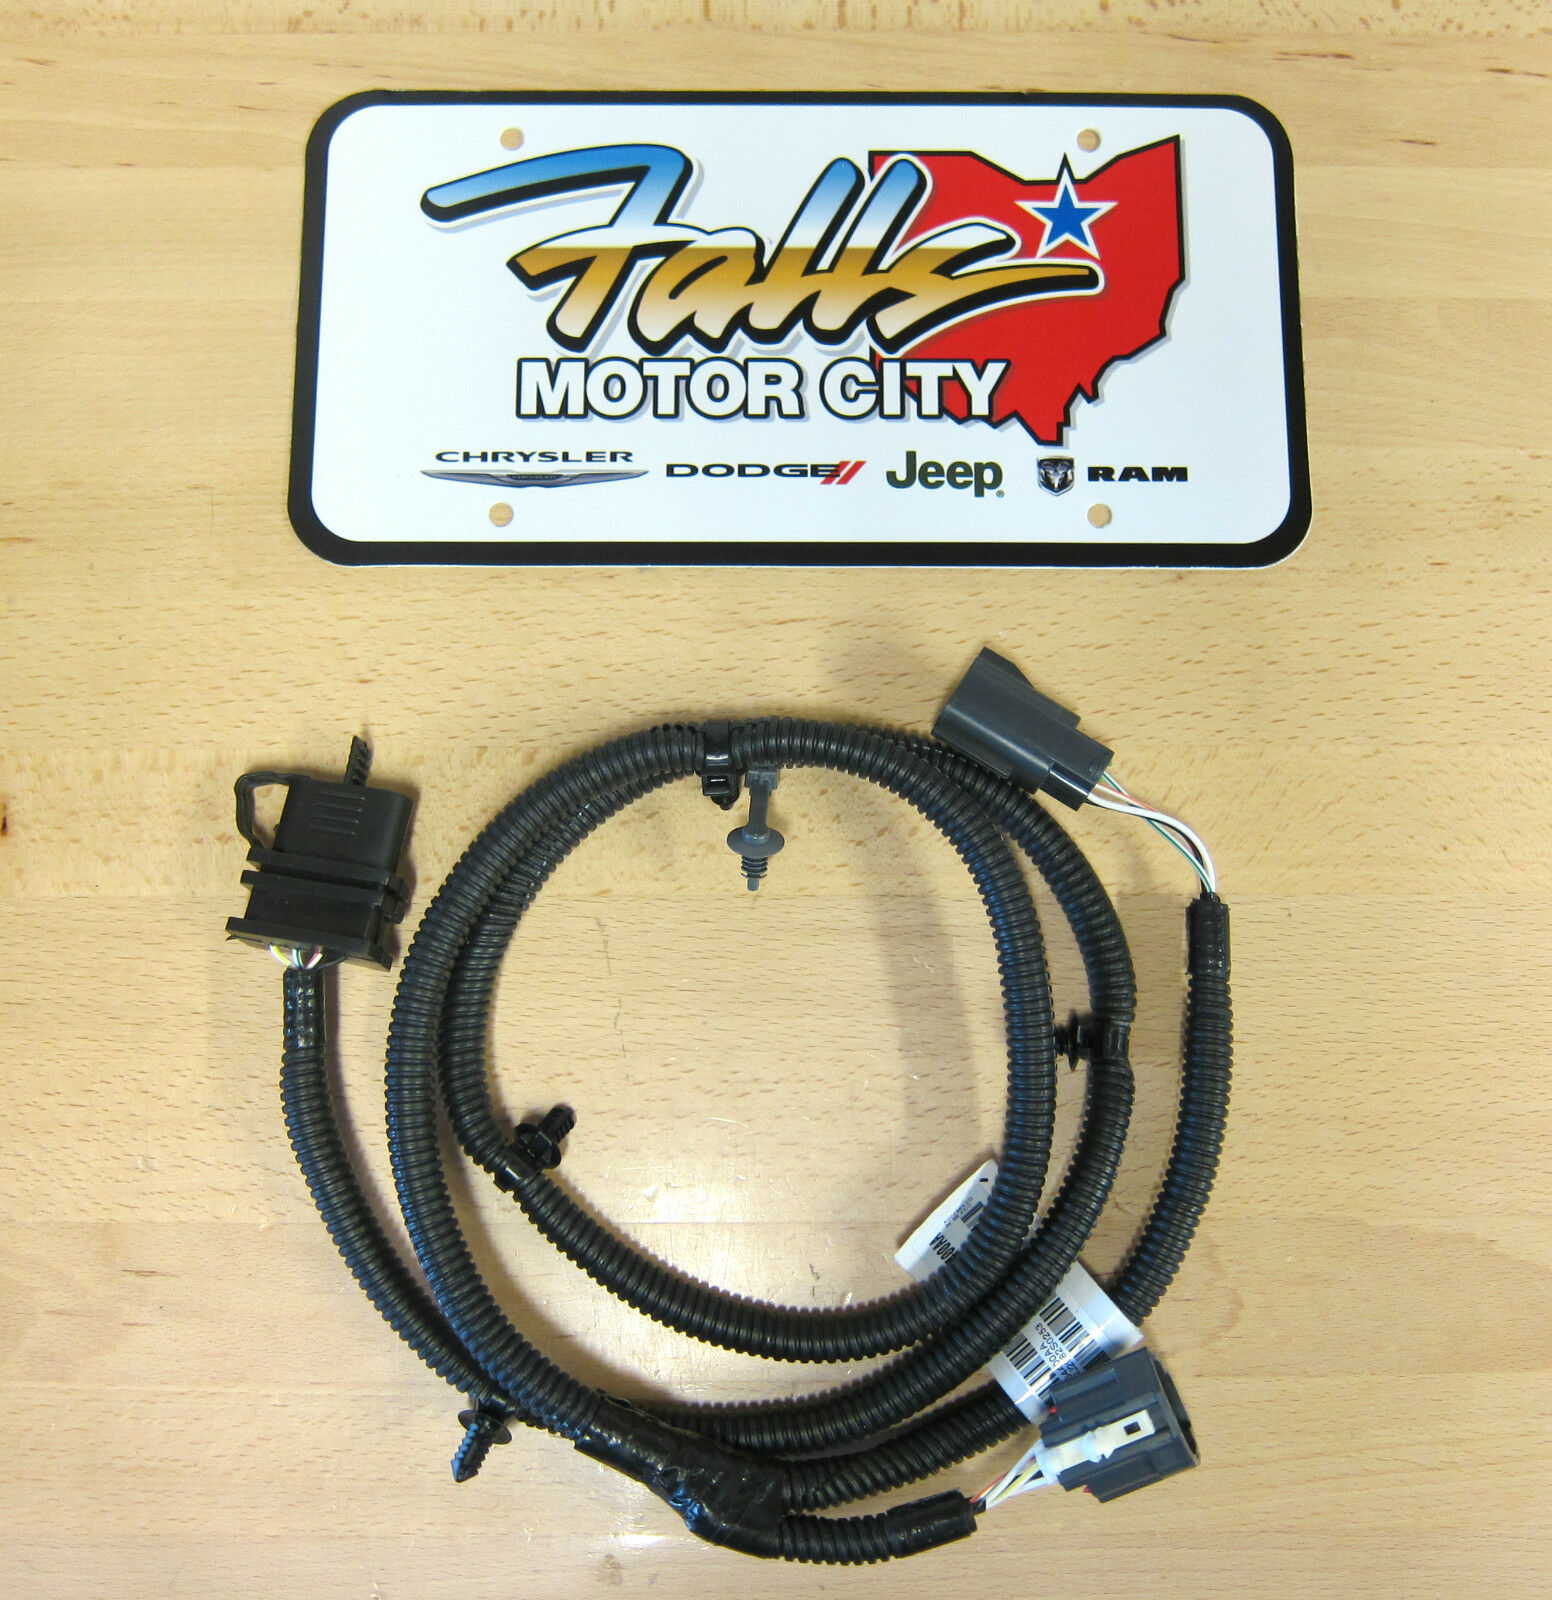 s l1600 jeep wrangler trailer tow wiring harness oem mopar 82210213 jk 4 jeep jk oem dash wiring harness at panicattacktreatment.co